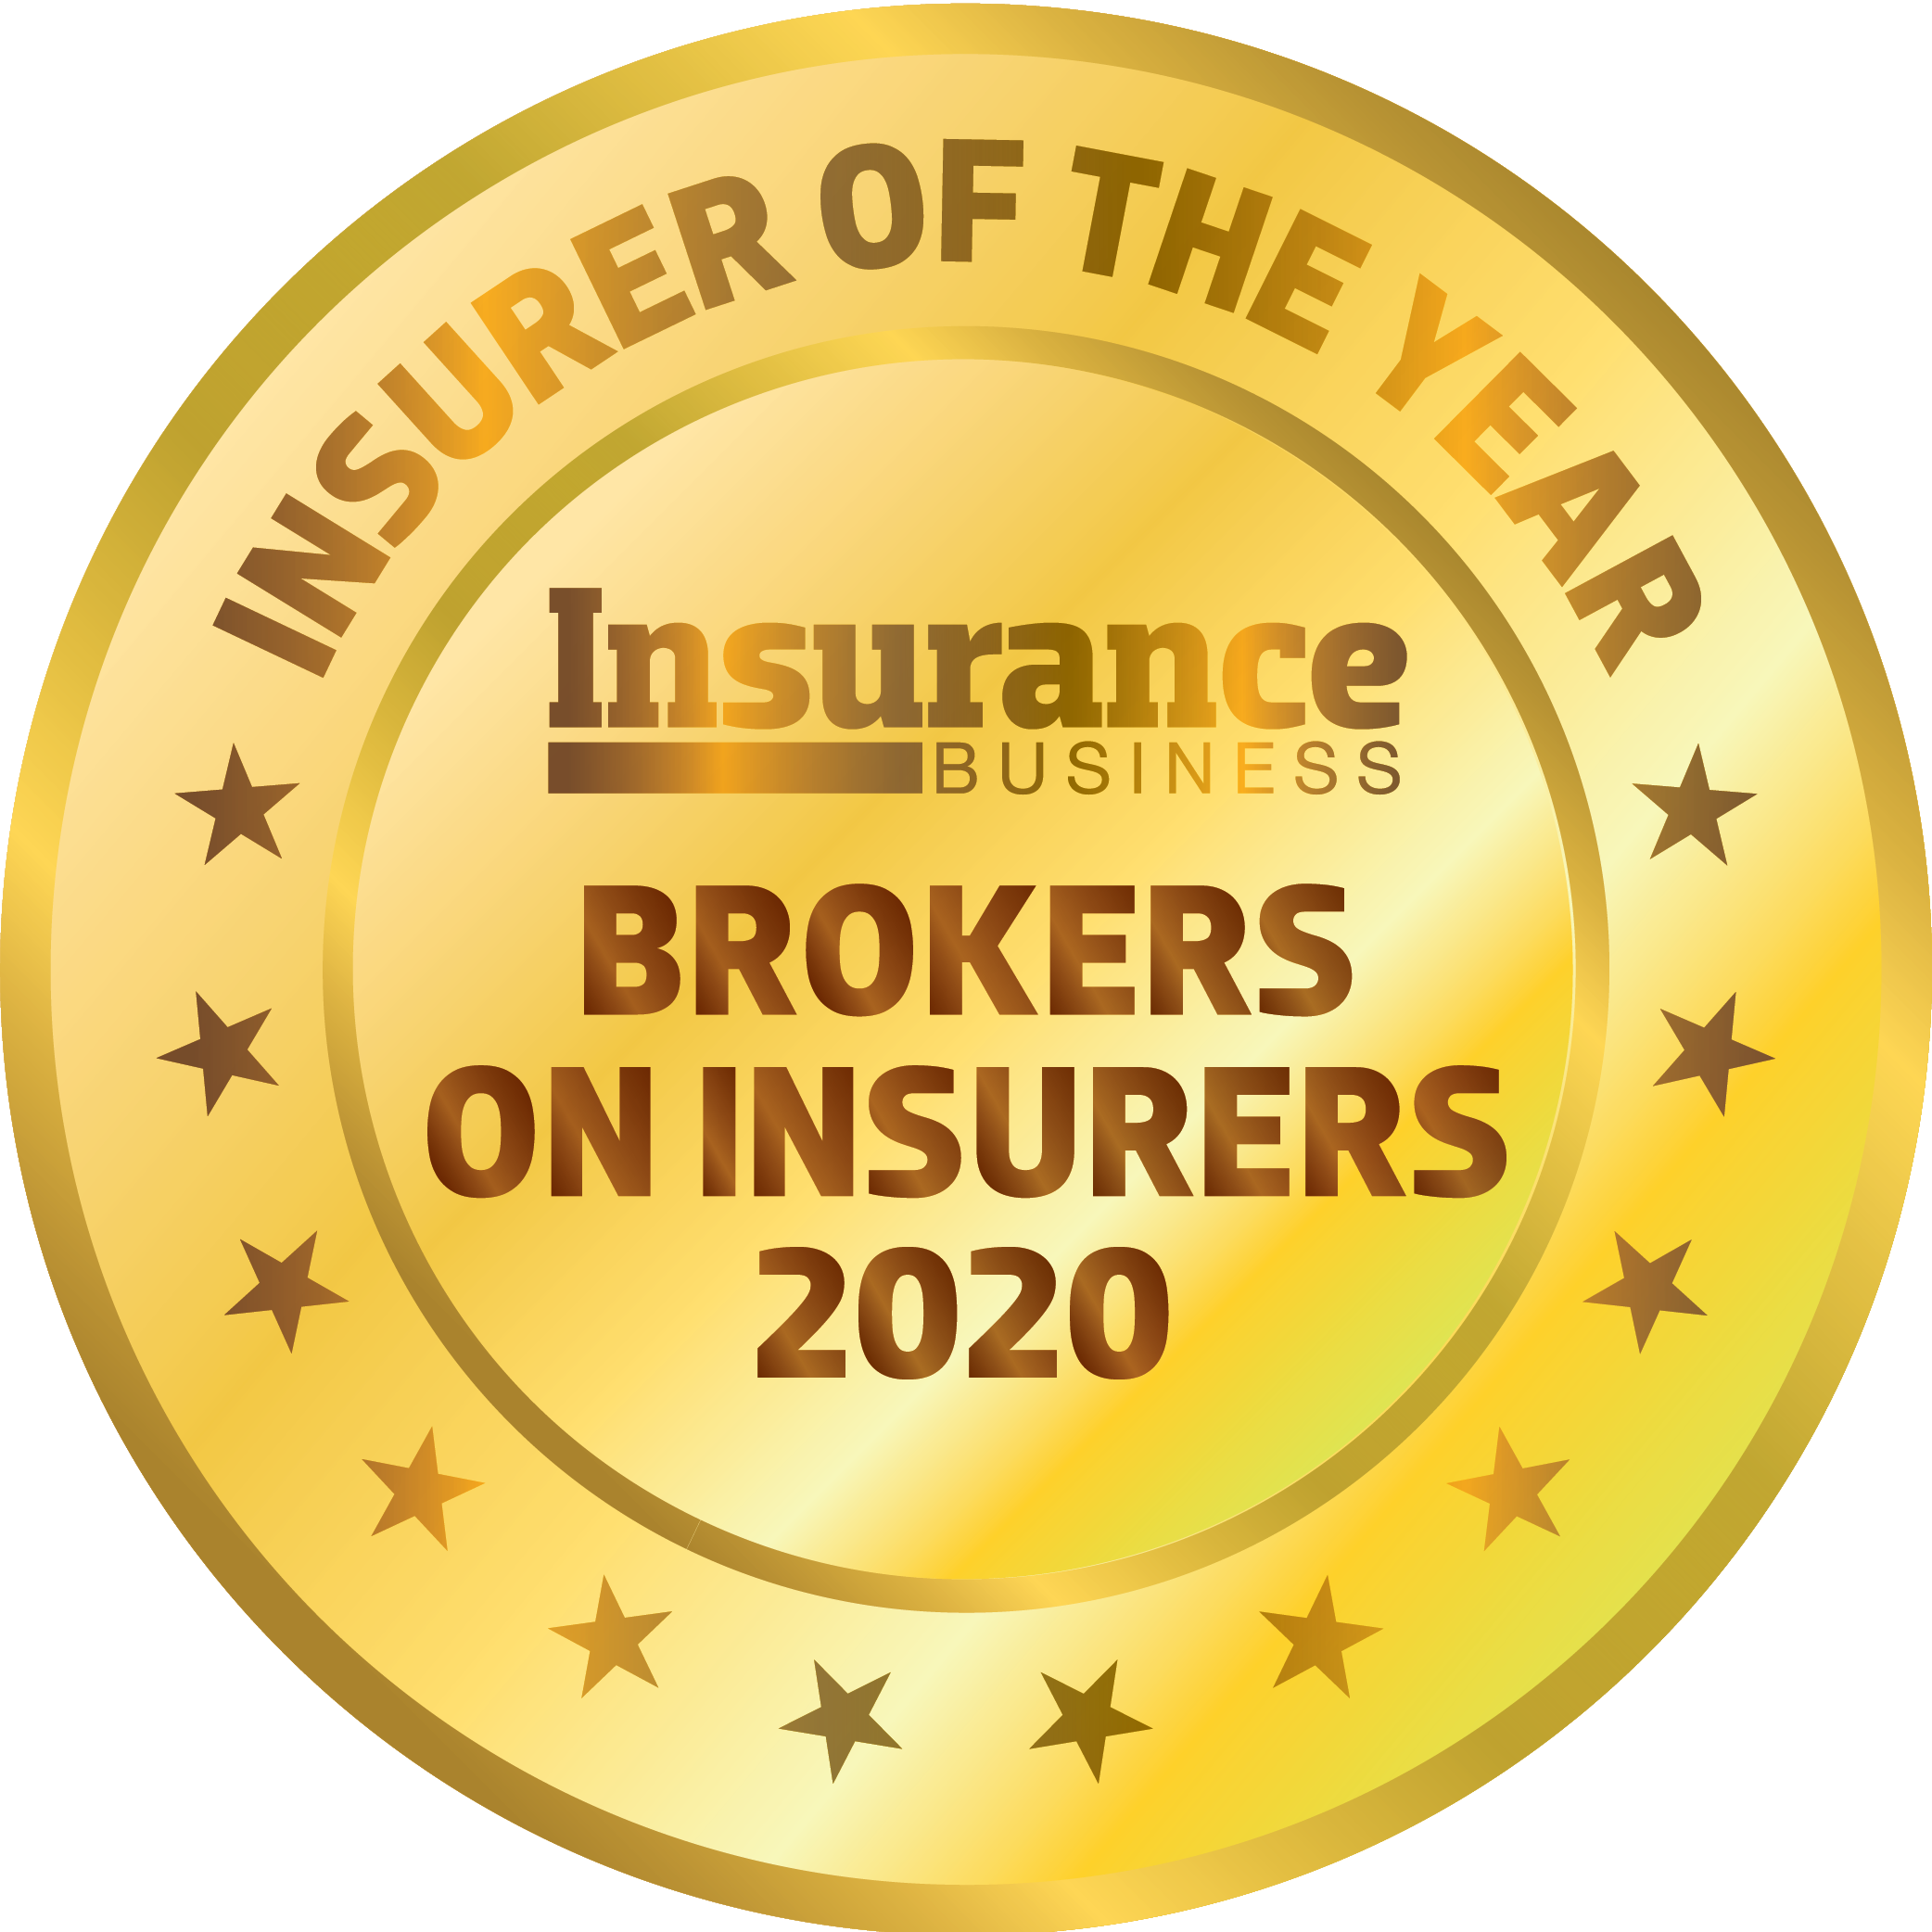 Brokers on Insurers 2020